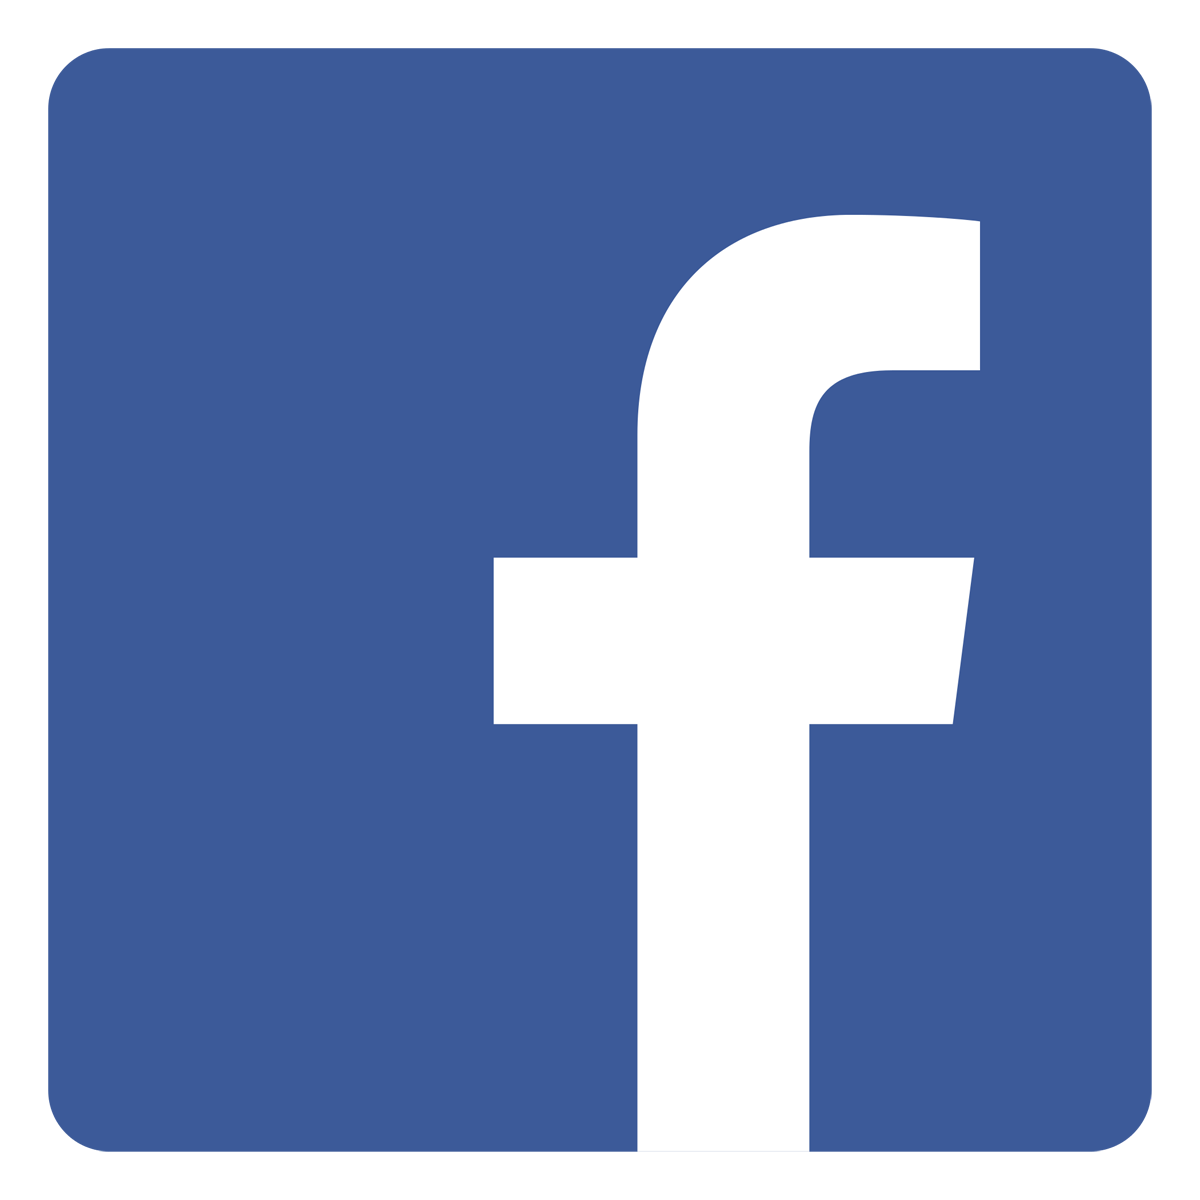 Meaning Facebook logo and symbol.